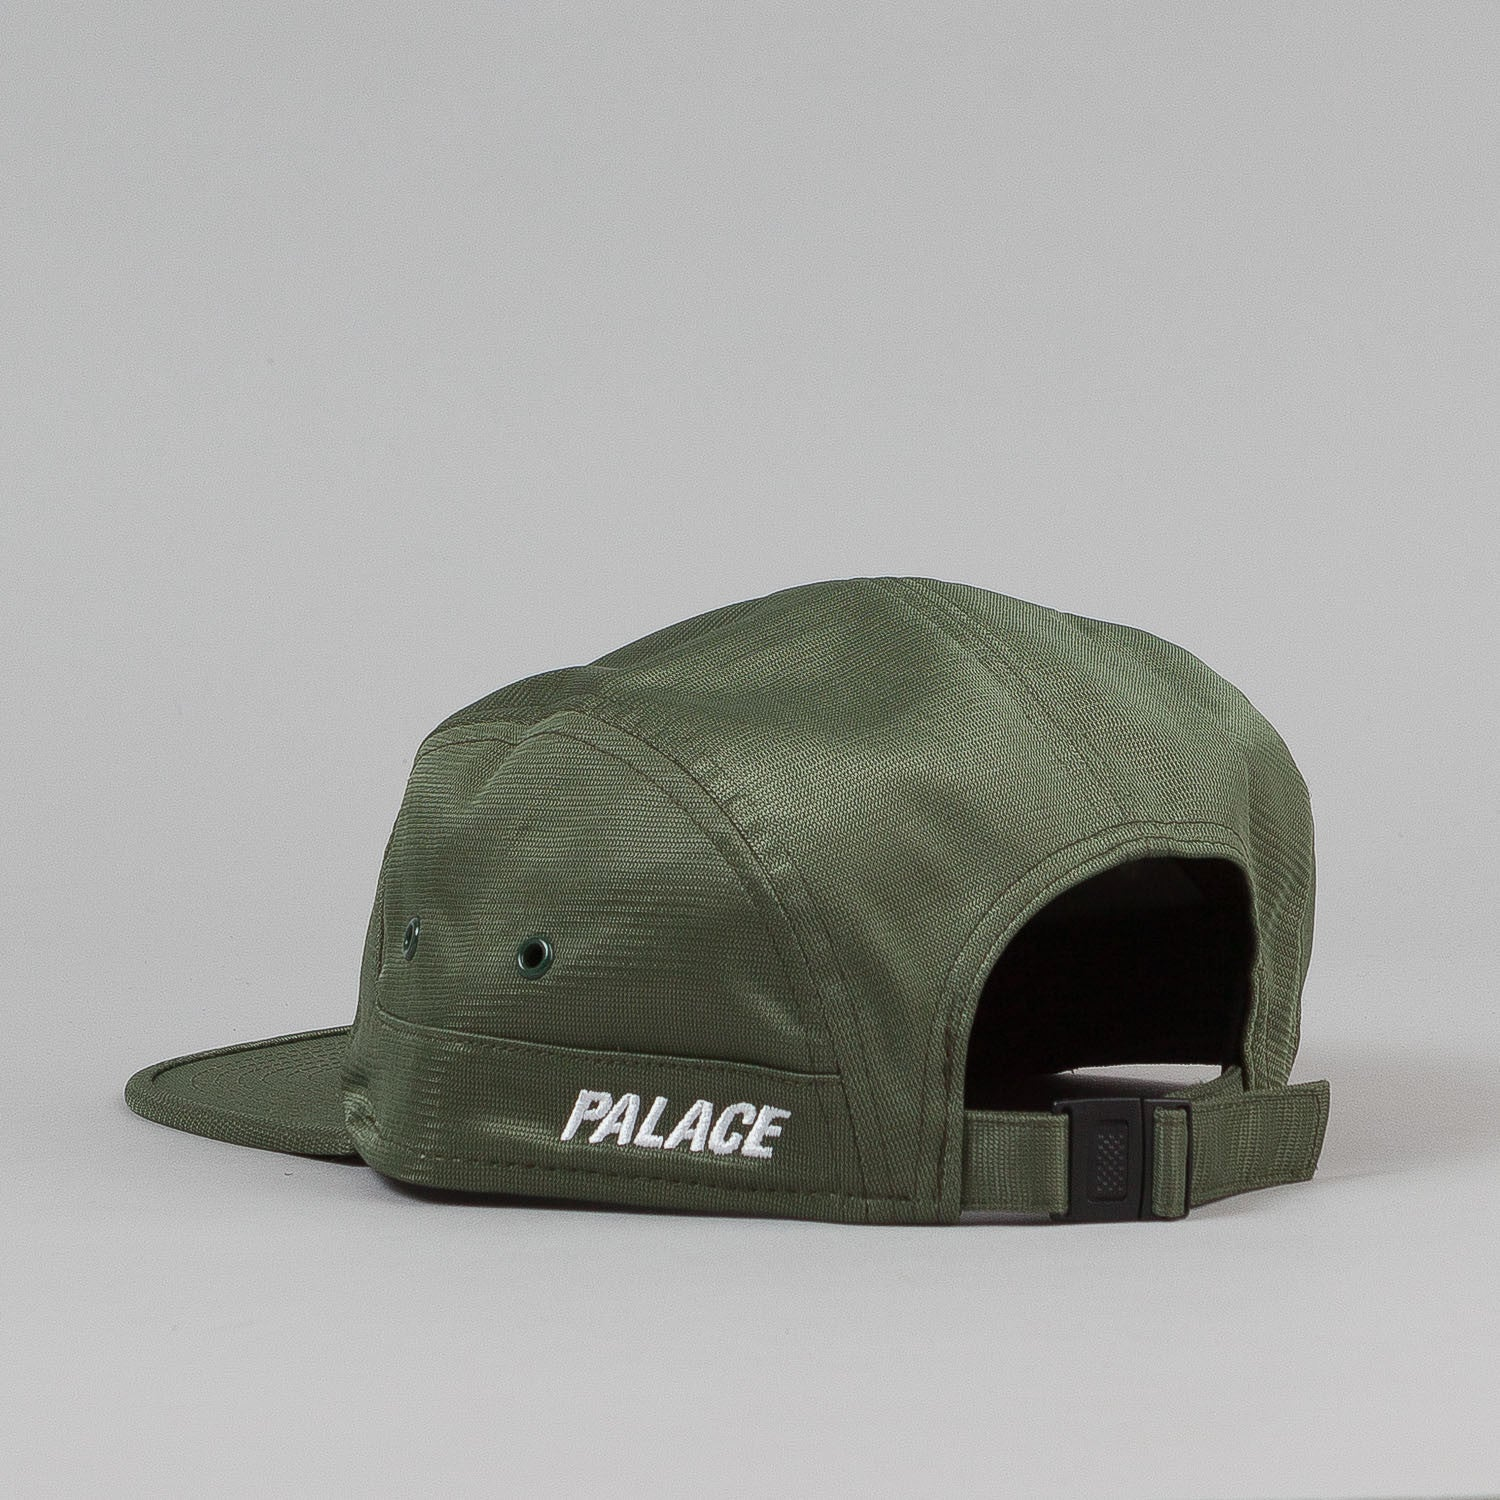 Palace 7 Panel Cap - Green